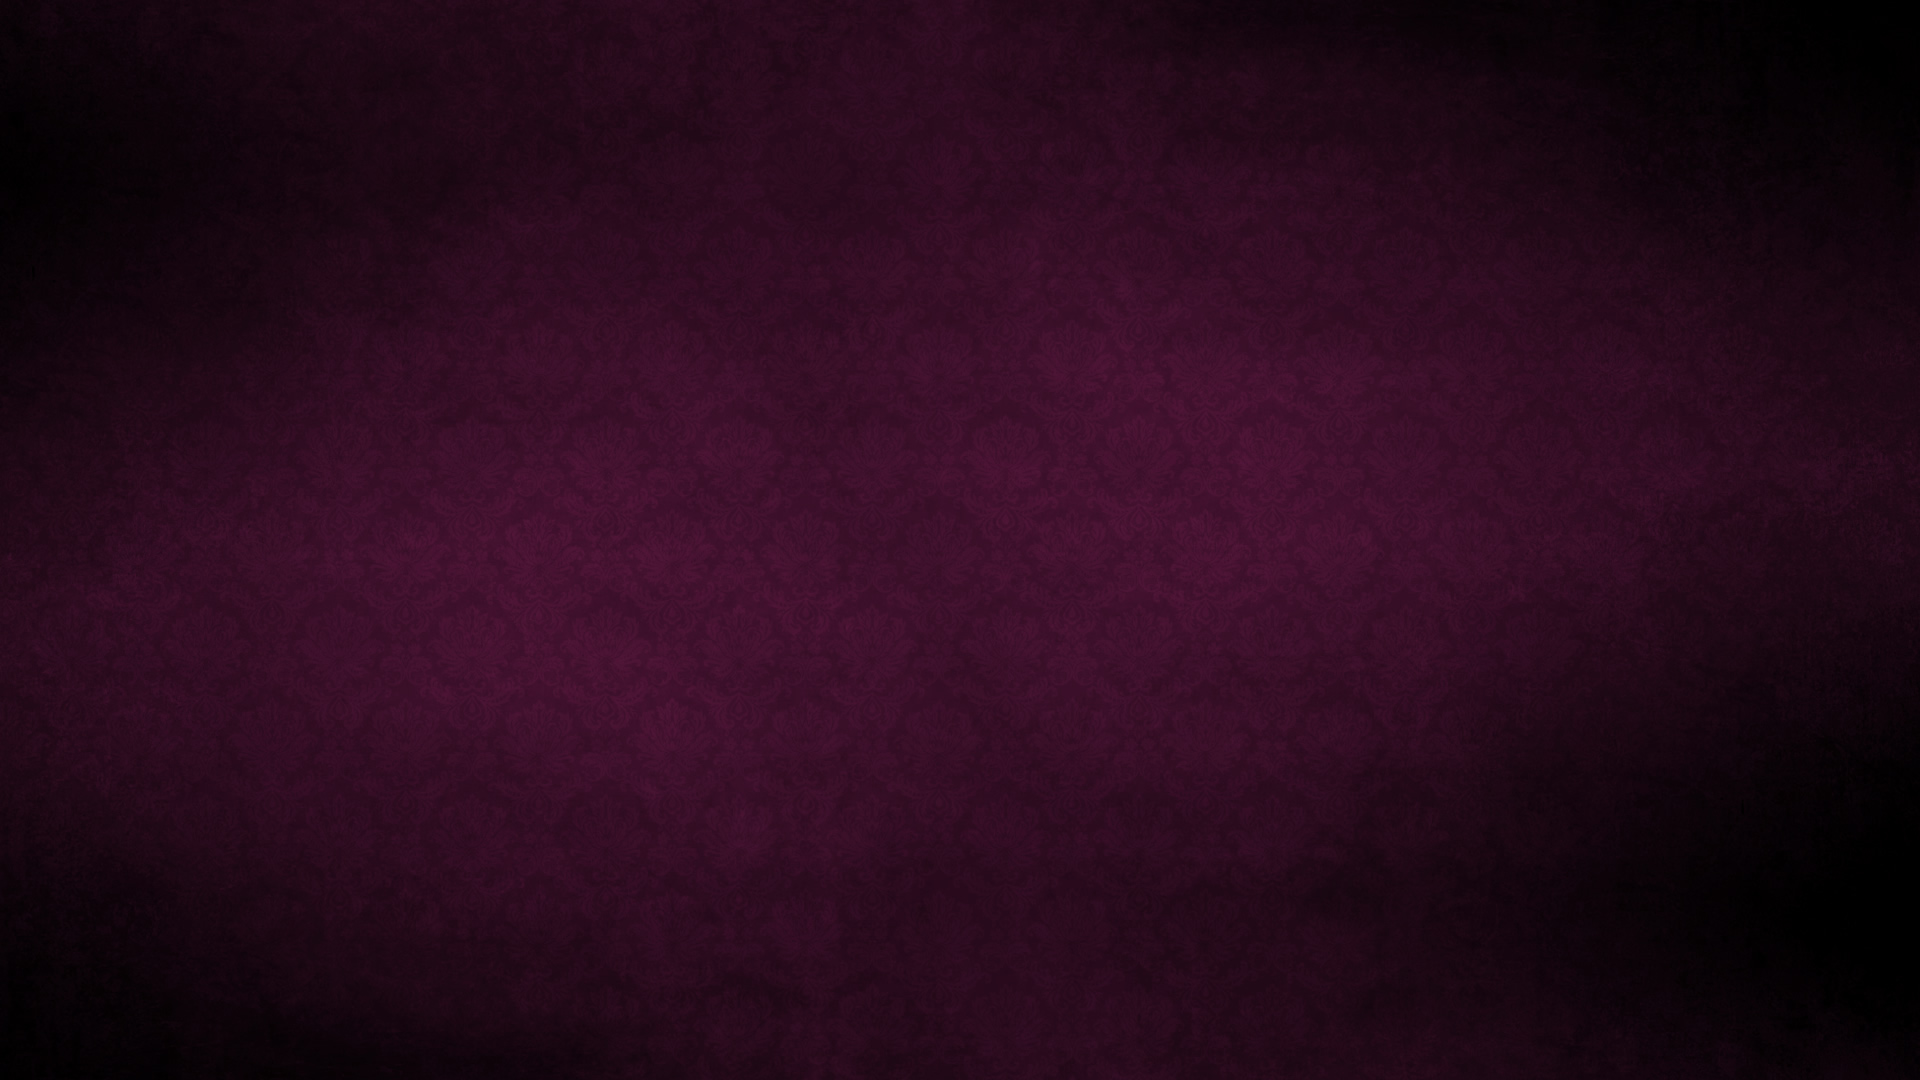 Plain Wallpapers HD maroon flowers